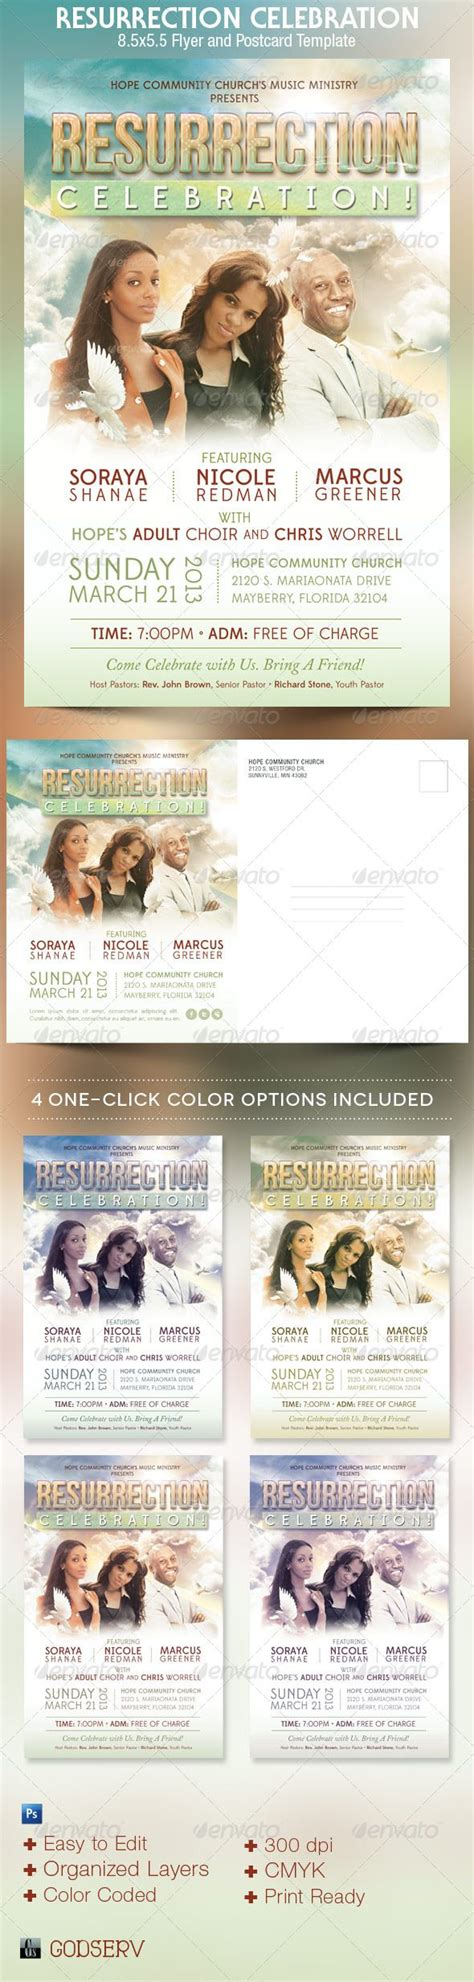 1000 Images About Templetes For Church On Pinterest | 1000 images about church print sles on pinterest